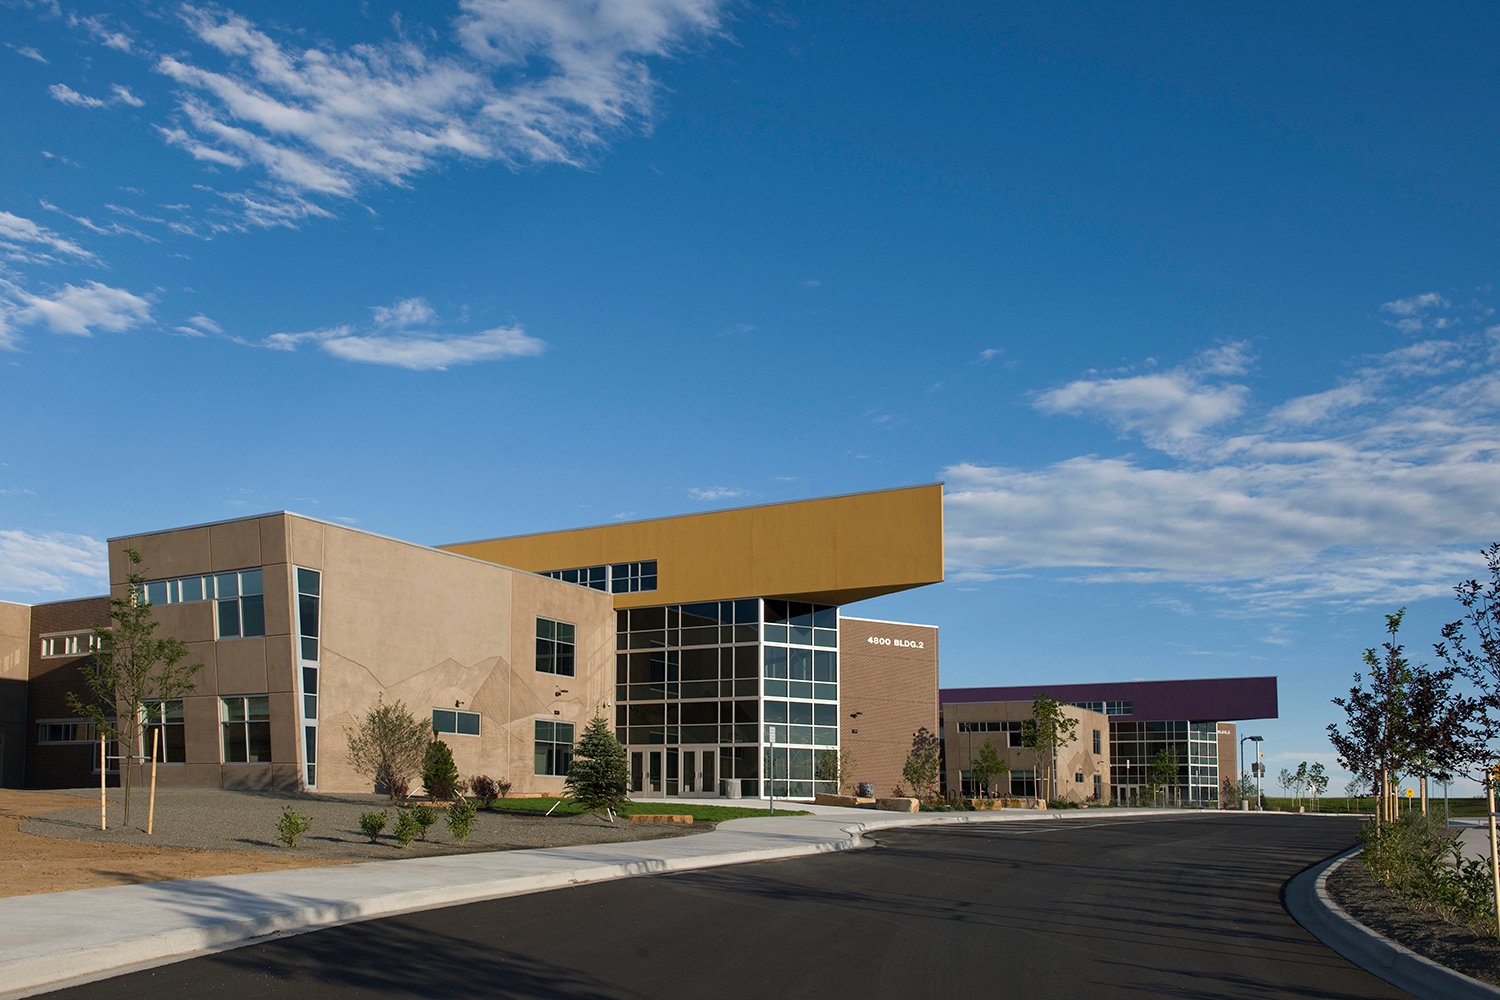 Tubelite helped bring the GVR High School vision to life with reliable products to create an eye-catching curtainwall.